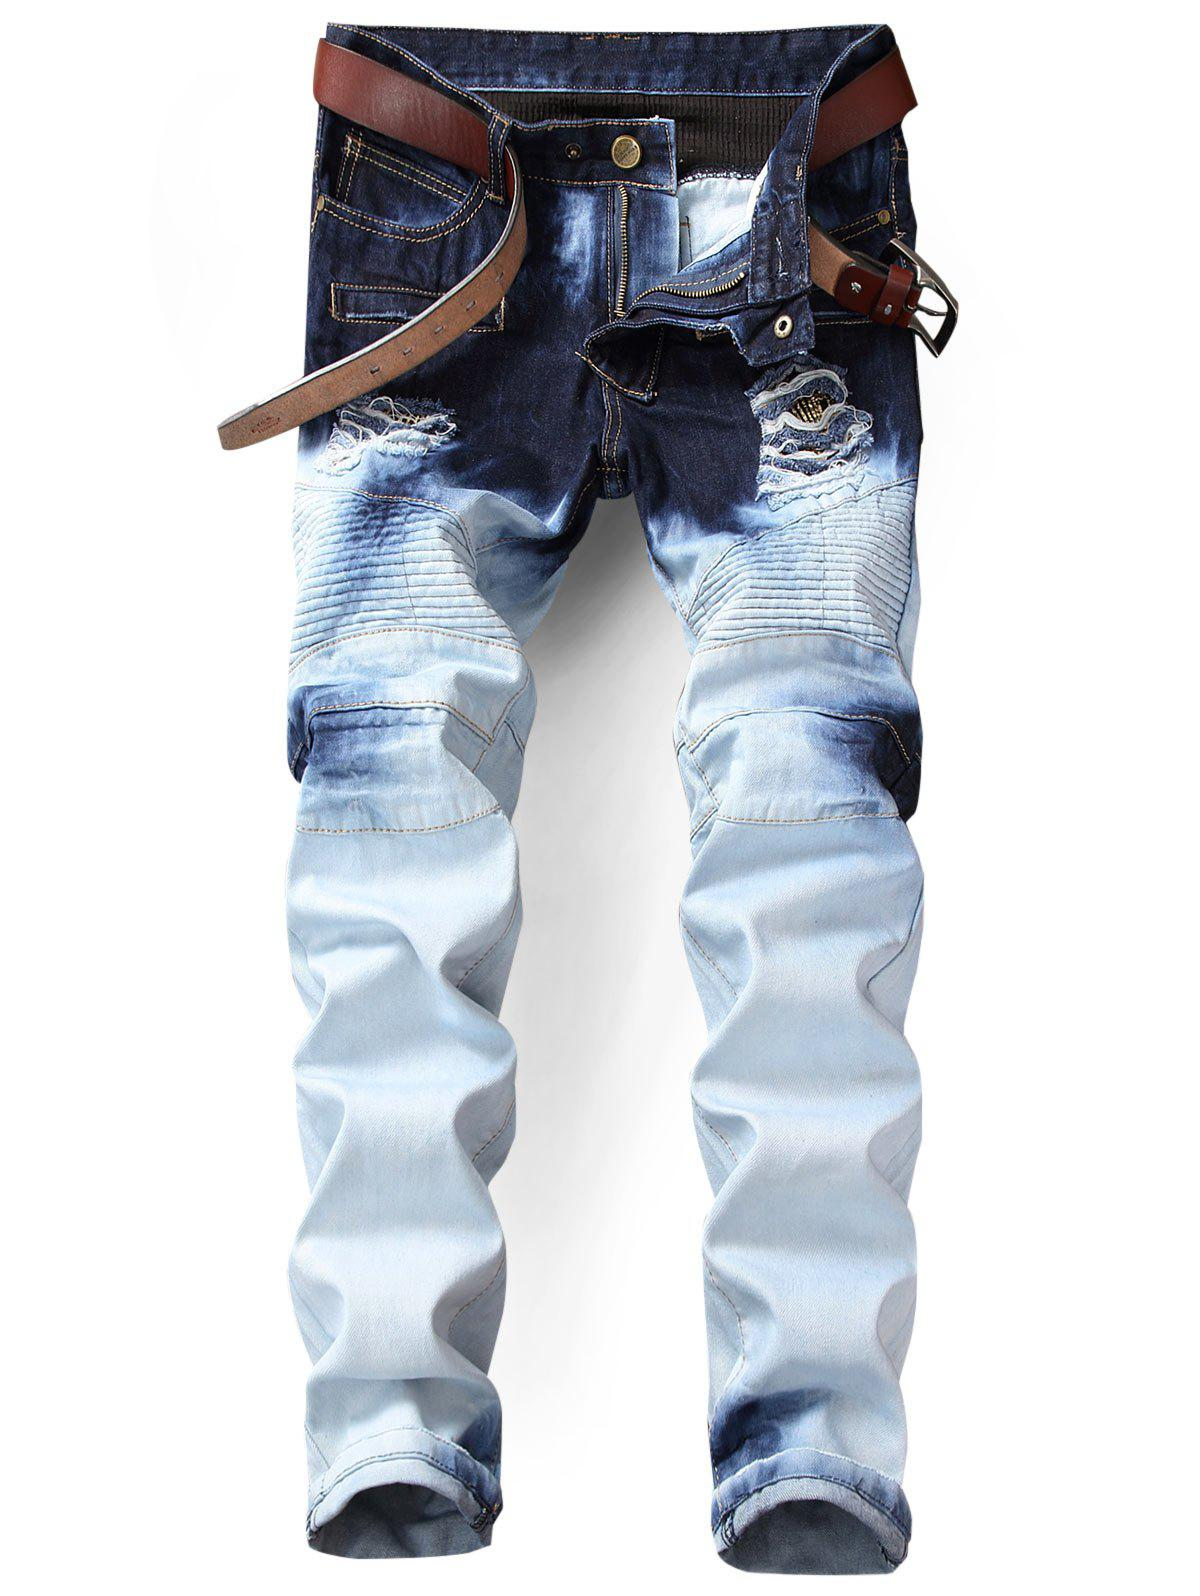 Zip Fly Tie Dyed Distressed Biker Jeans tiger embroidery distressed tie dyed jeans